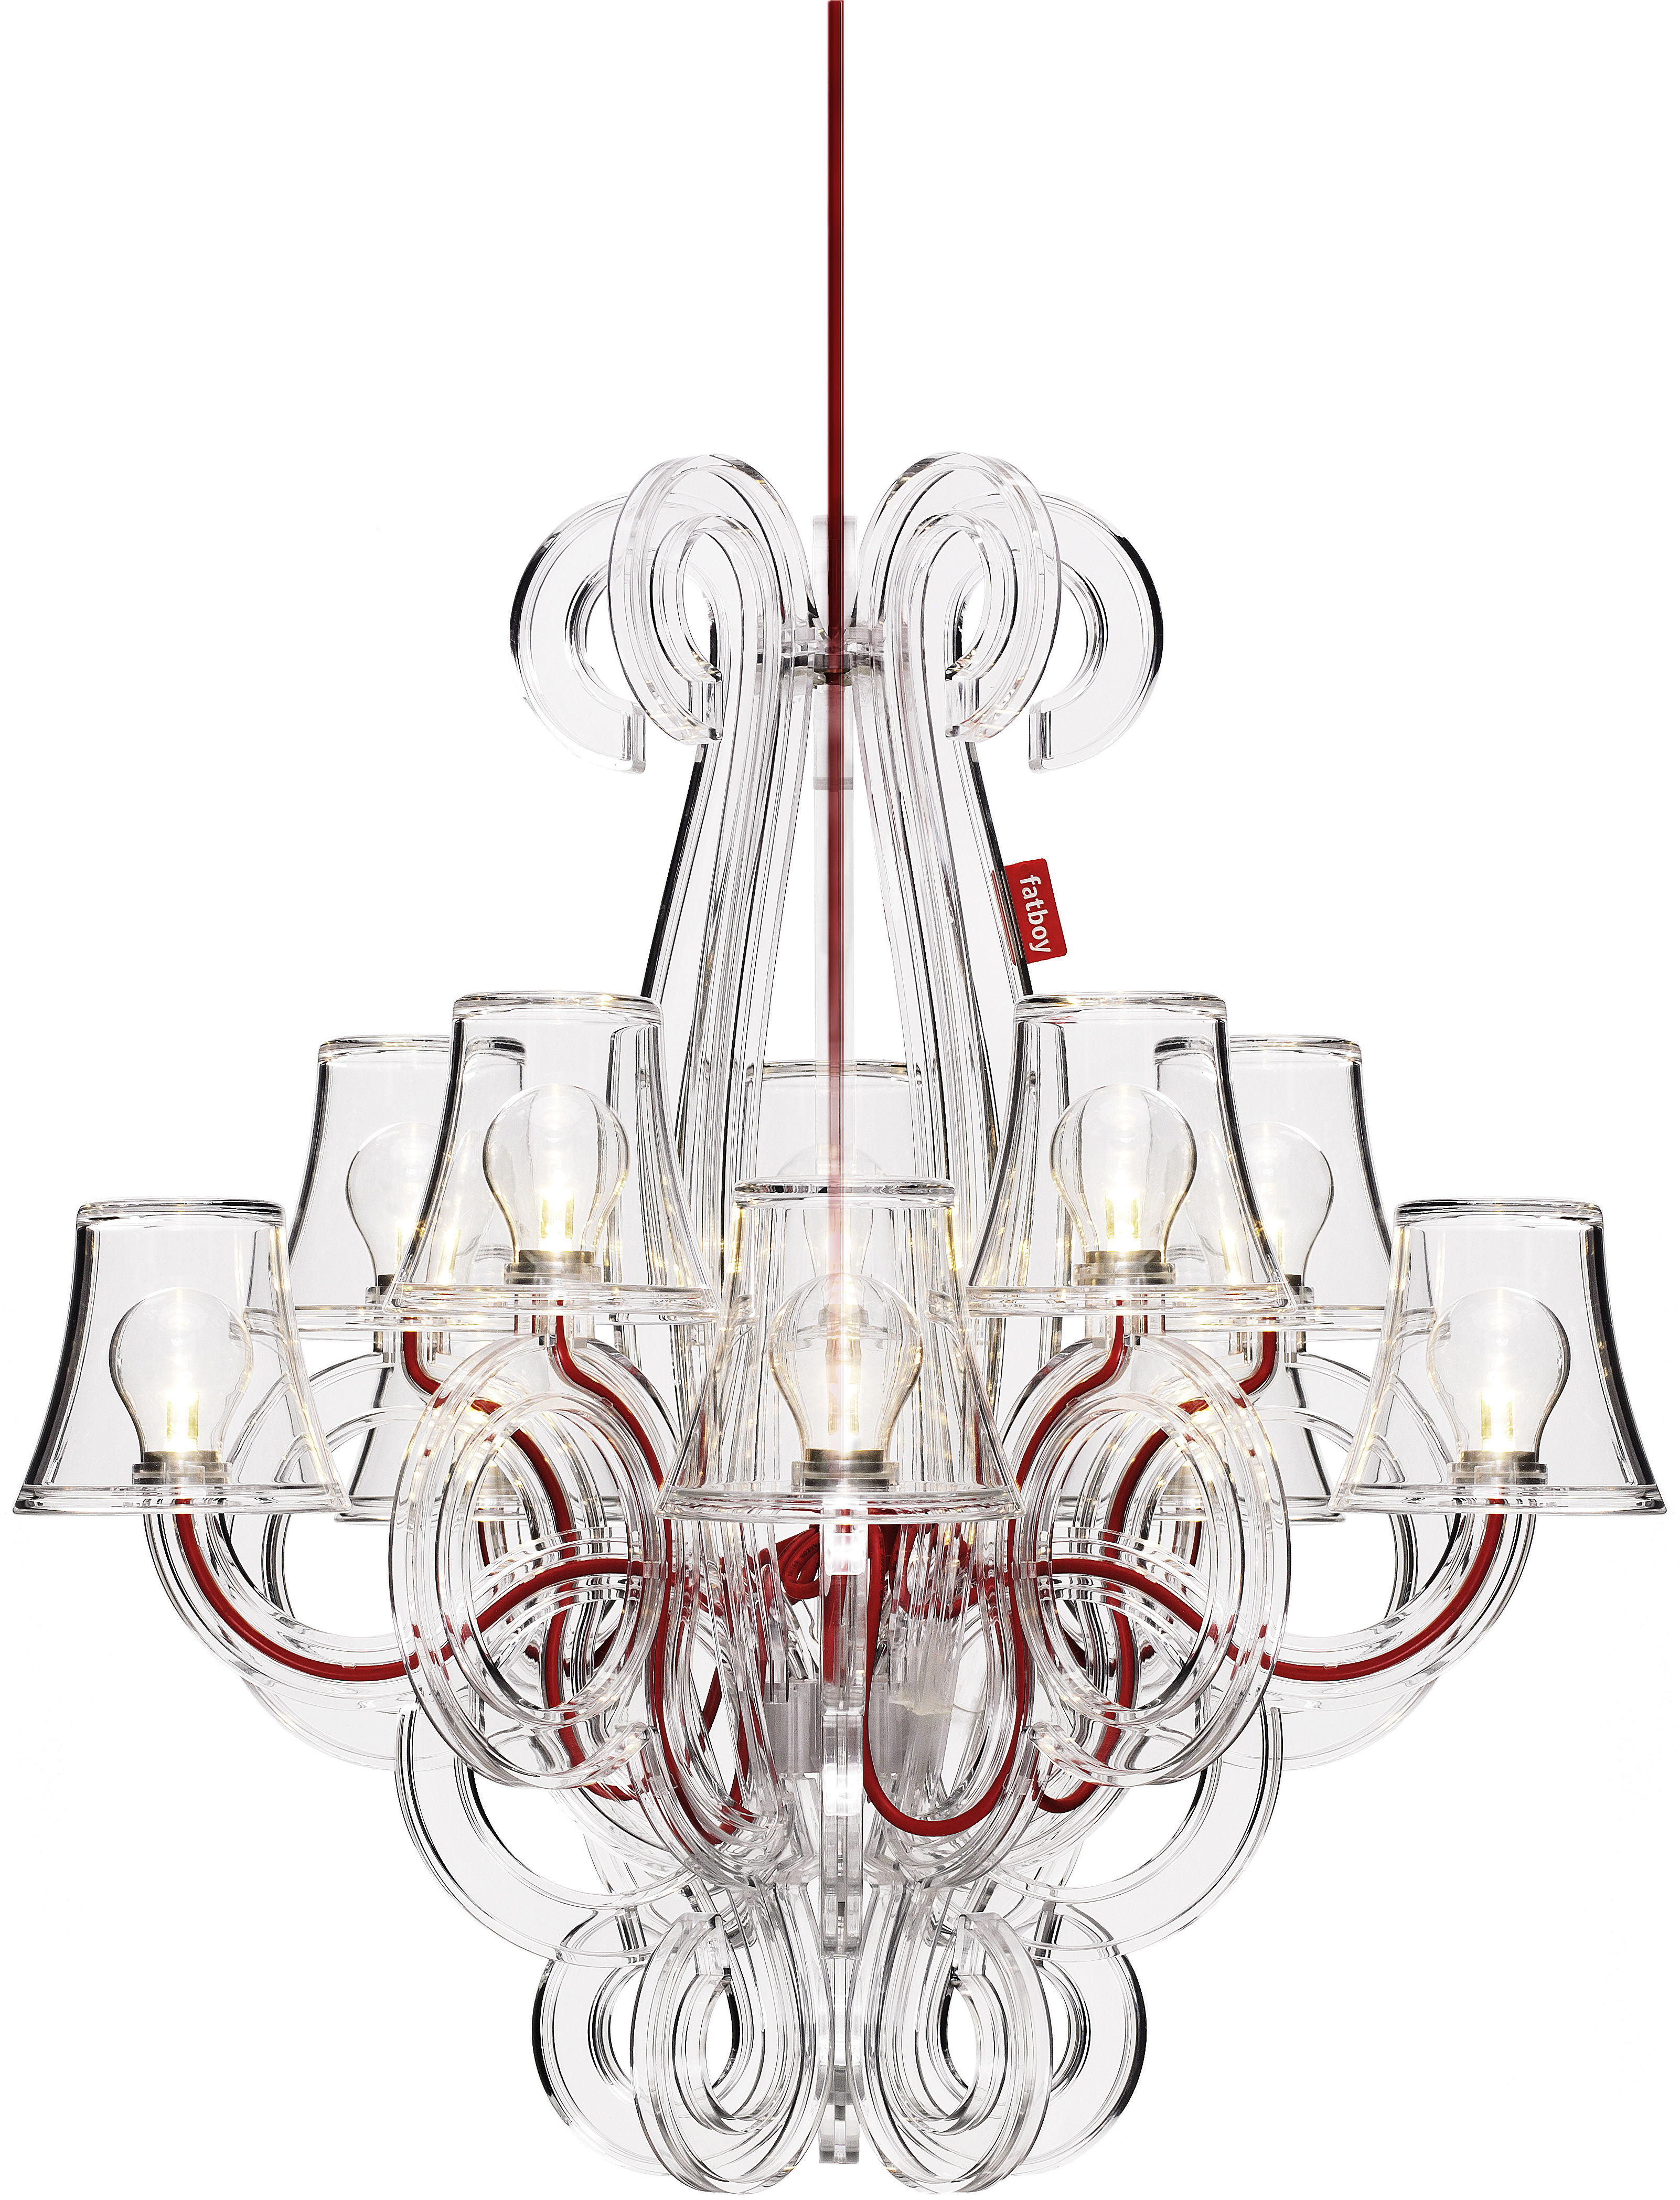 Lighting - Pendant Lighting - RockCoco Chandelier by Fatboy - Transparent - Red - Polycarbonate